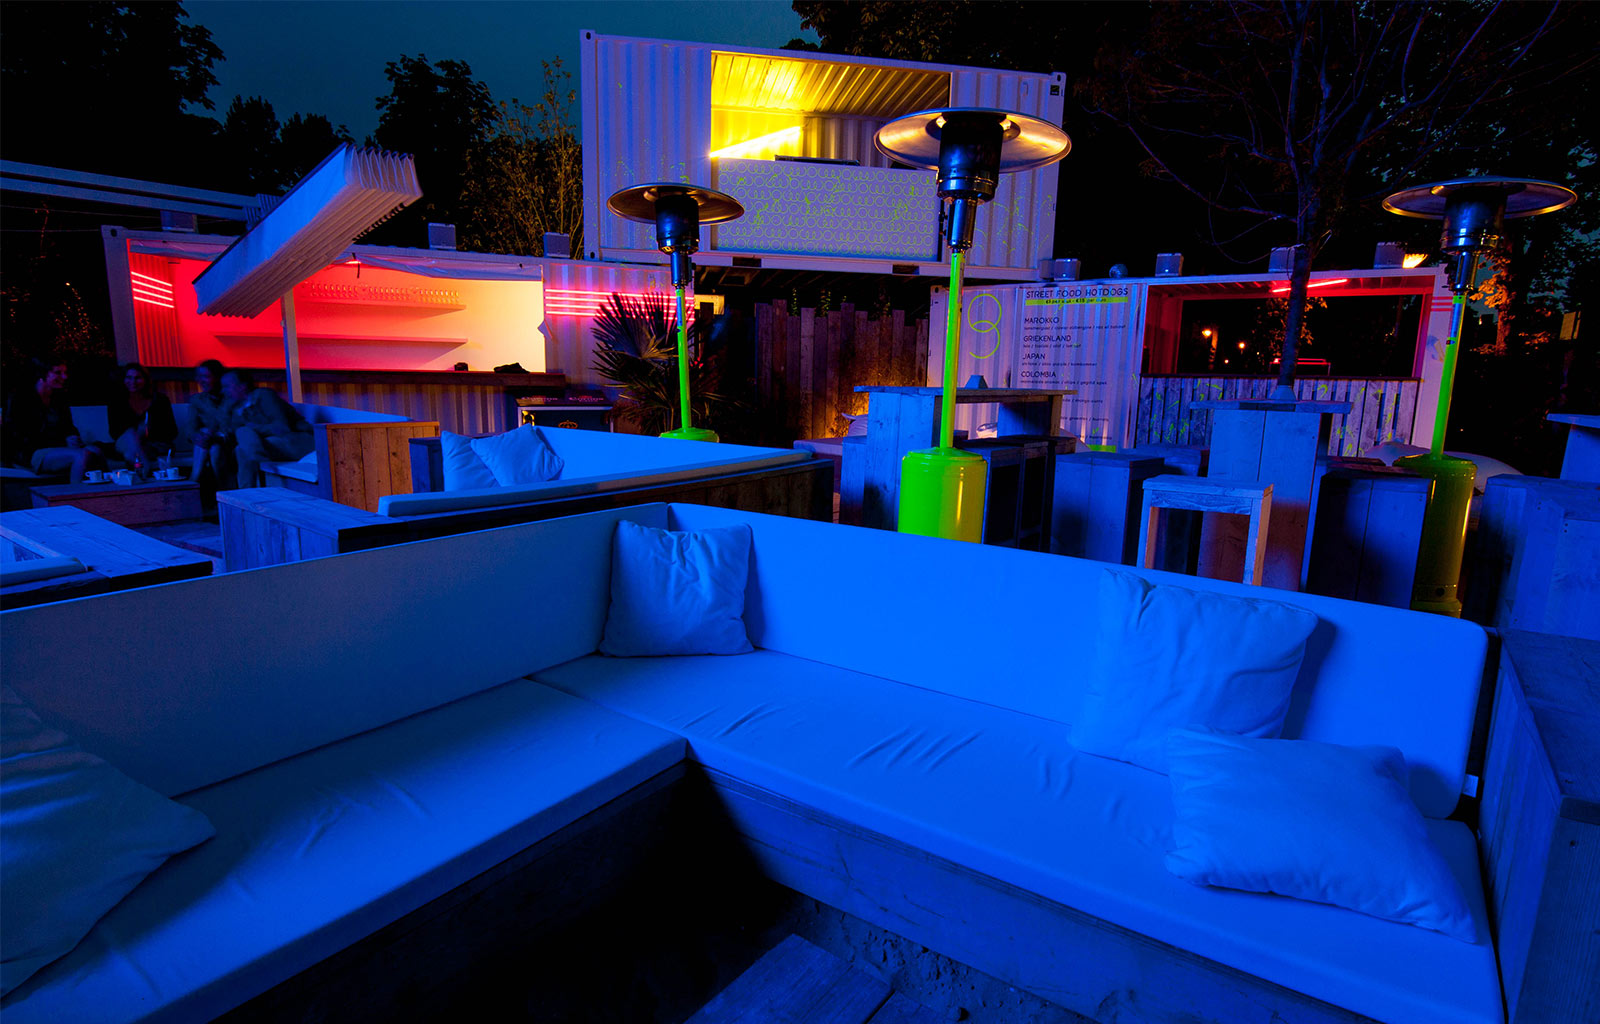 At night the fluorescent paint takes over and the place transforms to a party zone with vibrant colours.